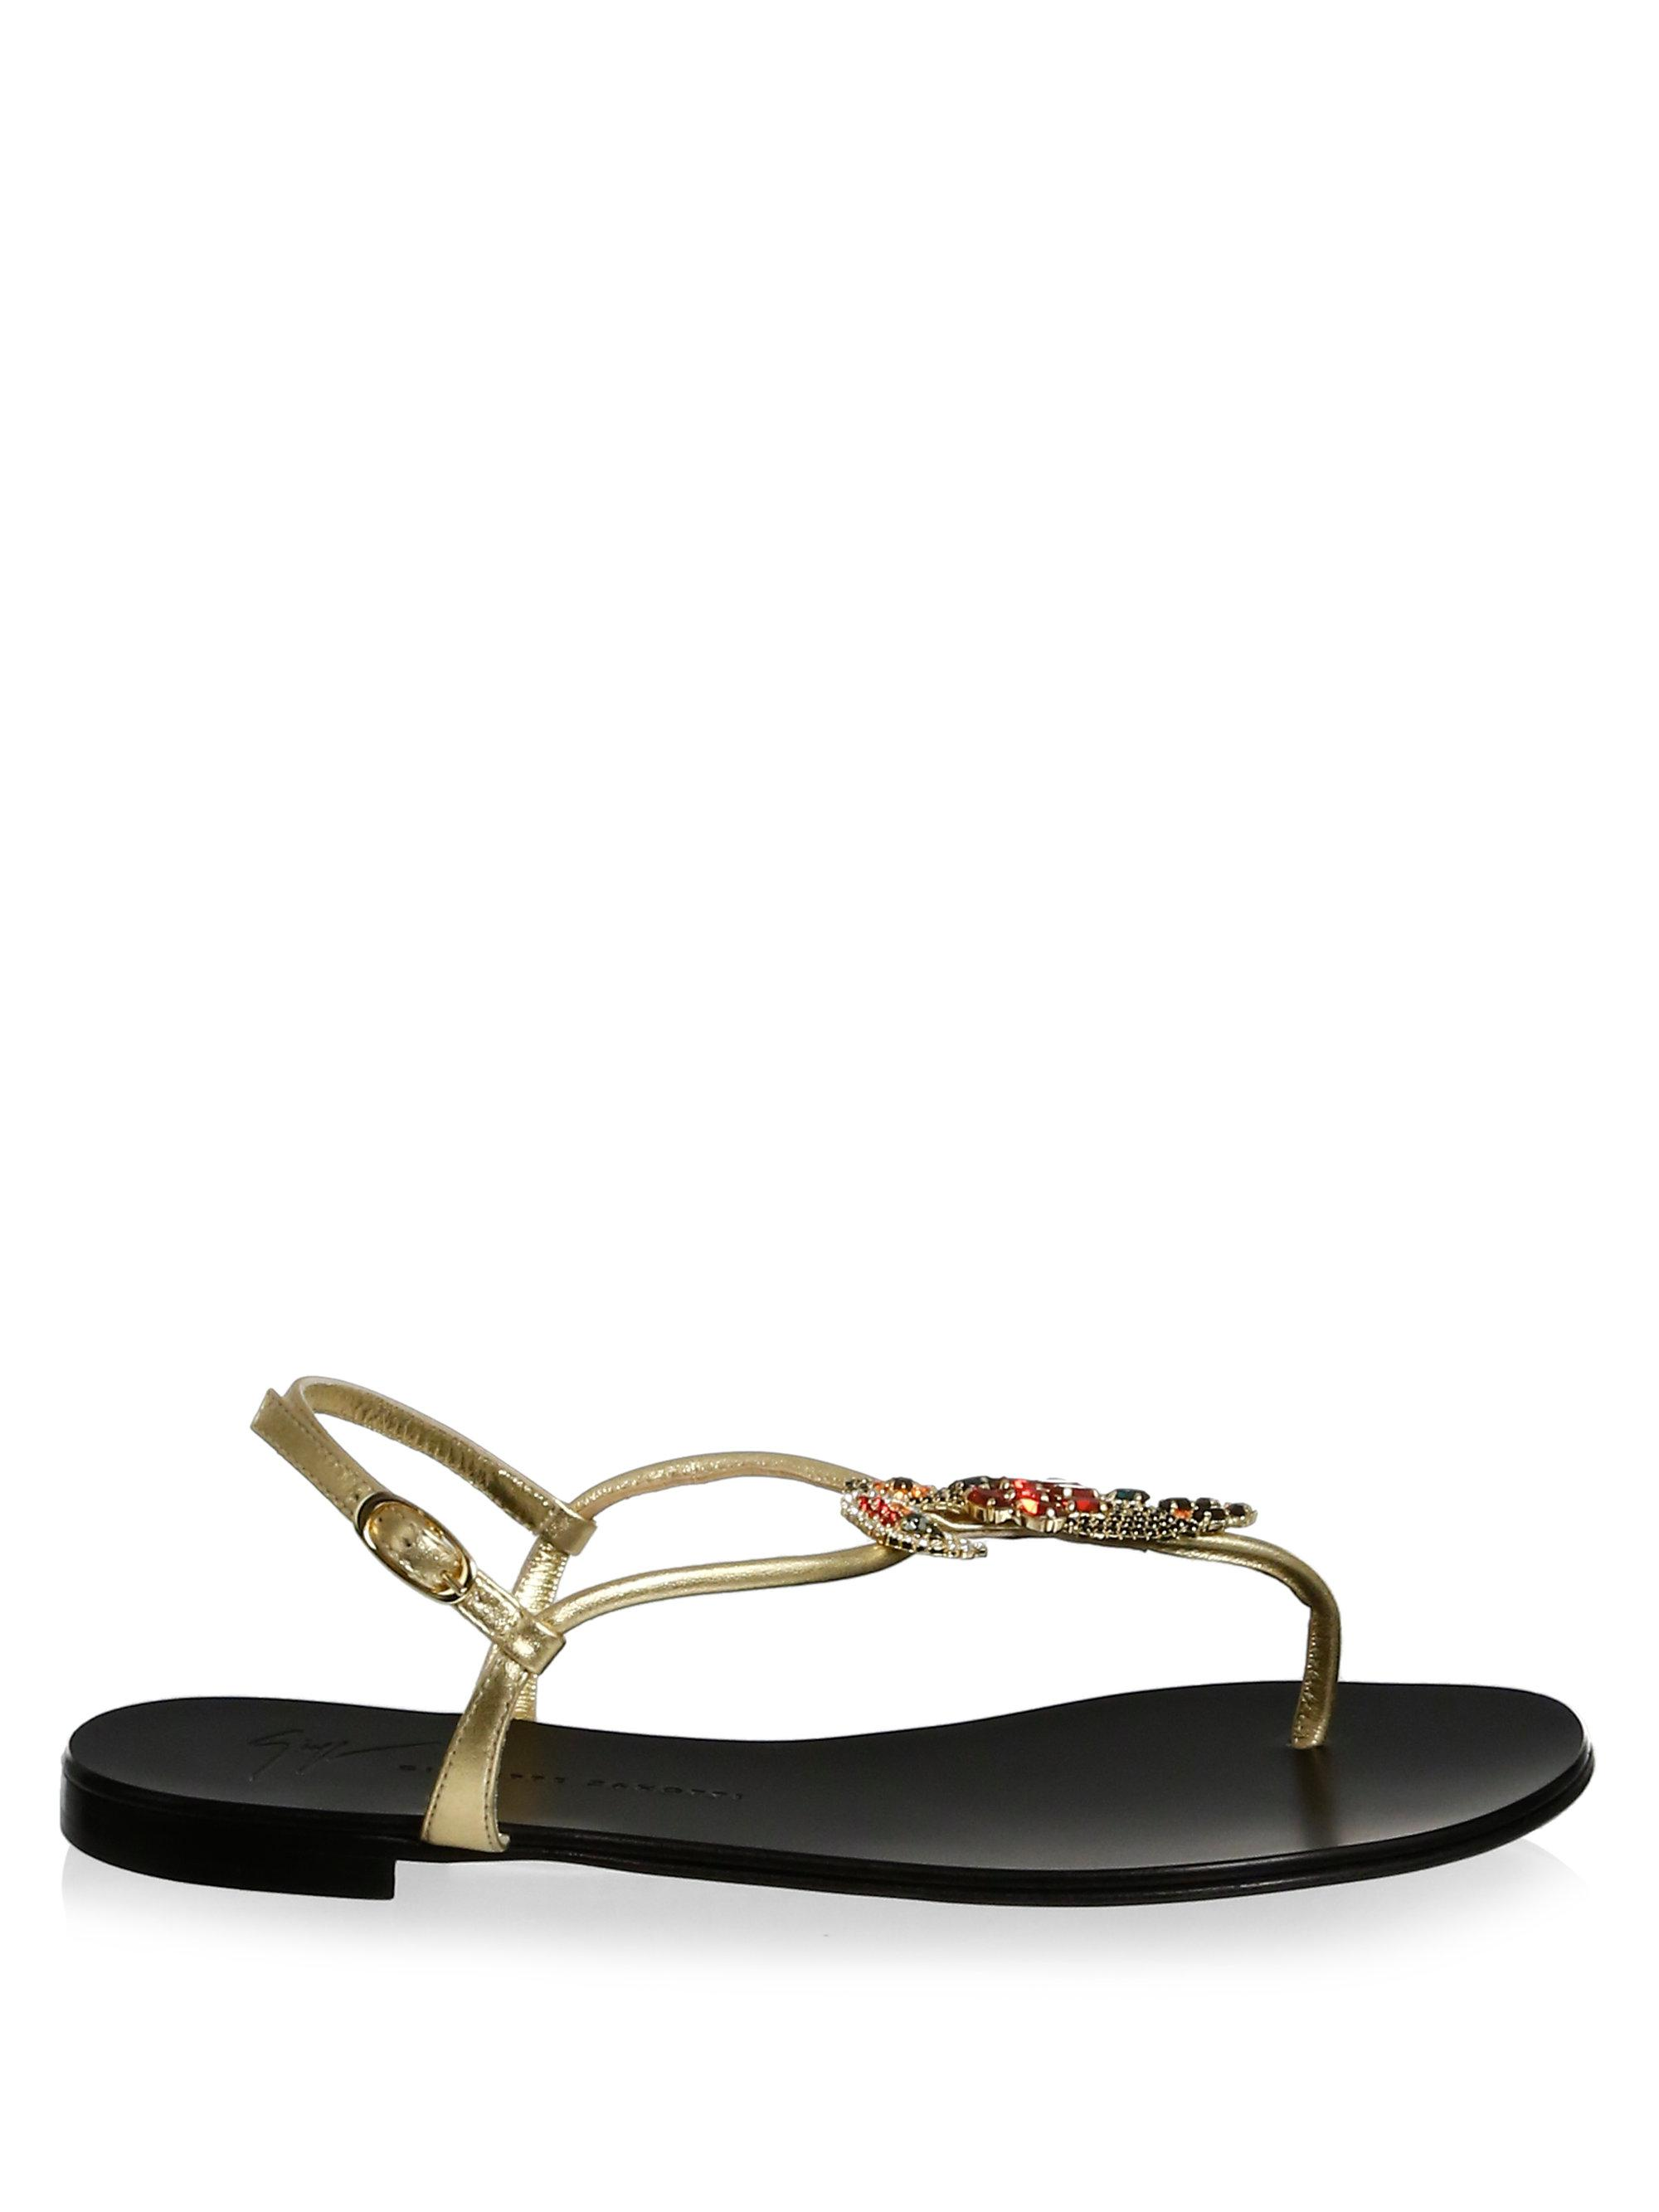 Giuseppe Zanotti Strass Thong Sandals classic cheap price 2014 newest online wholesale price online j3e32twNr